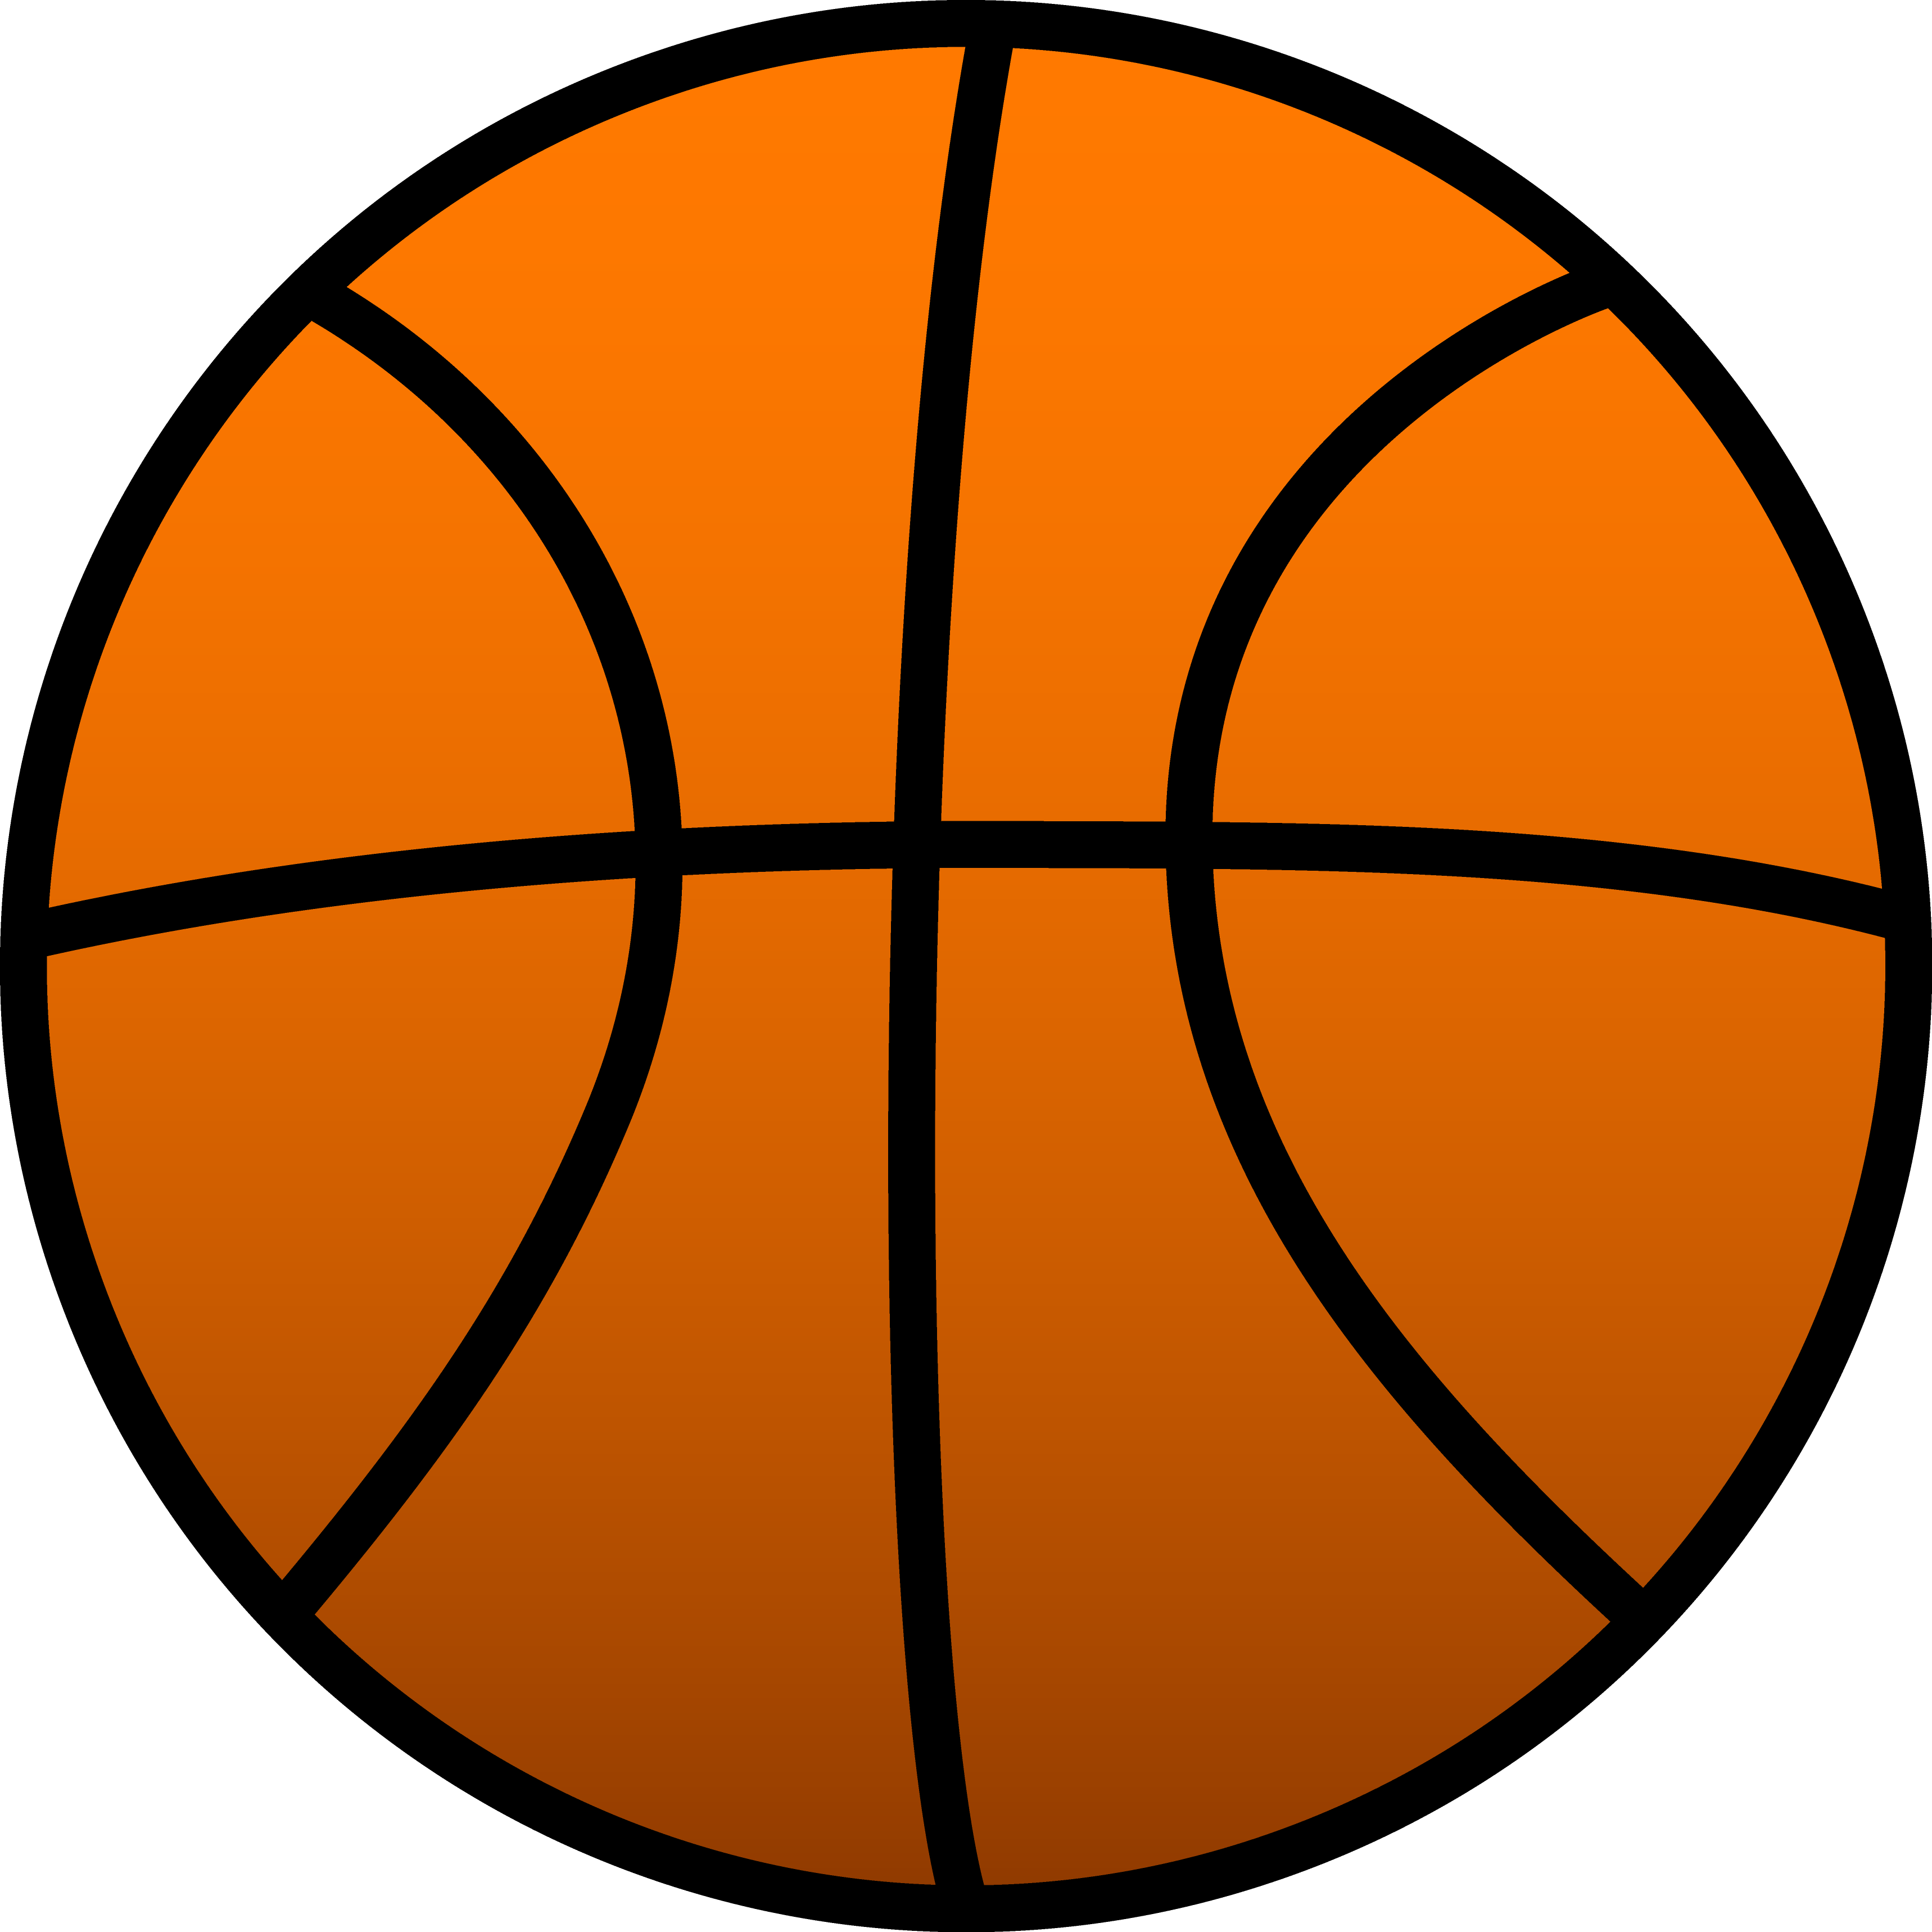 Basketball clipart public domain clip transparent library Orange Basketball Clipart free image clip transparent library